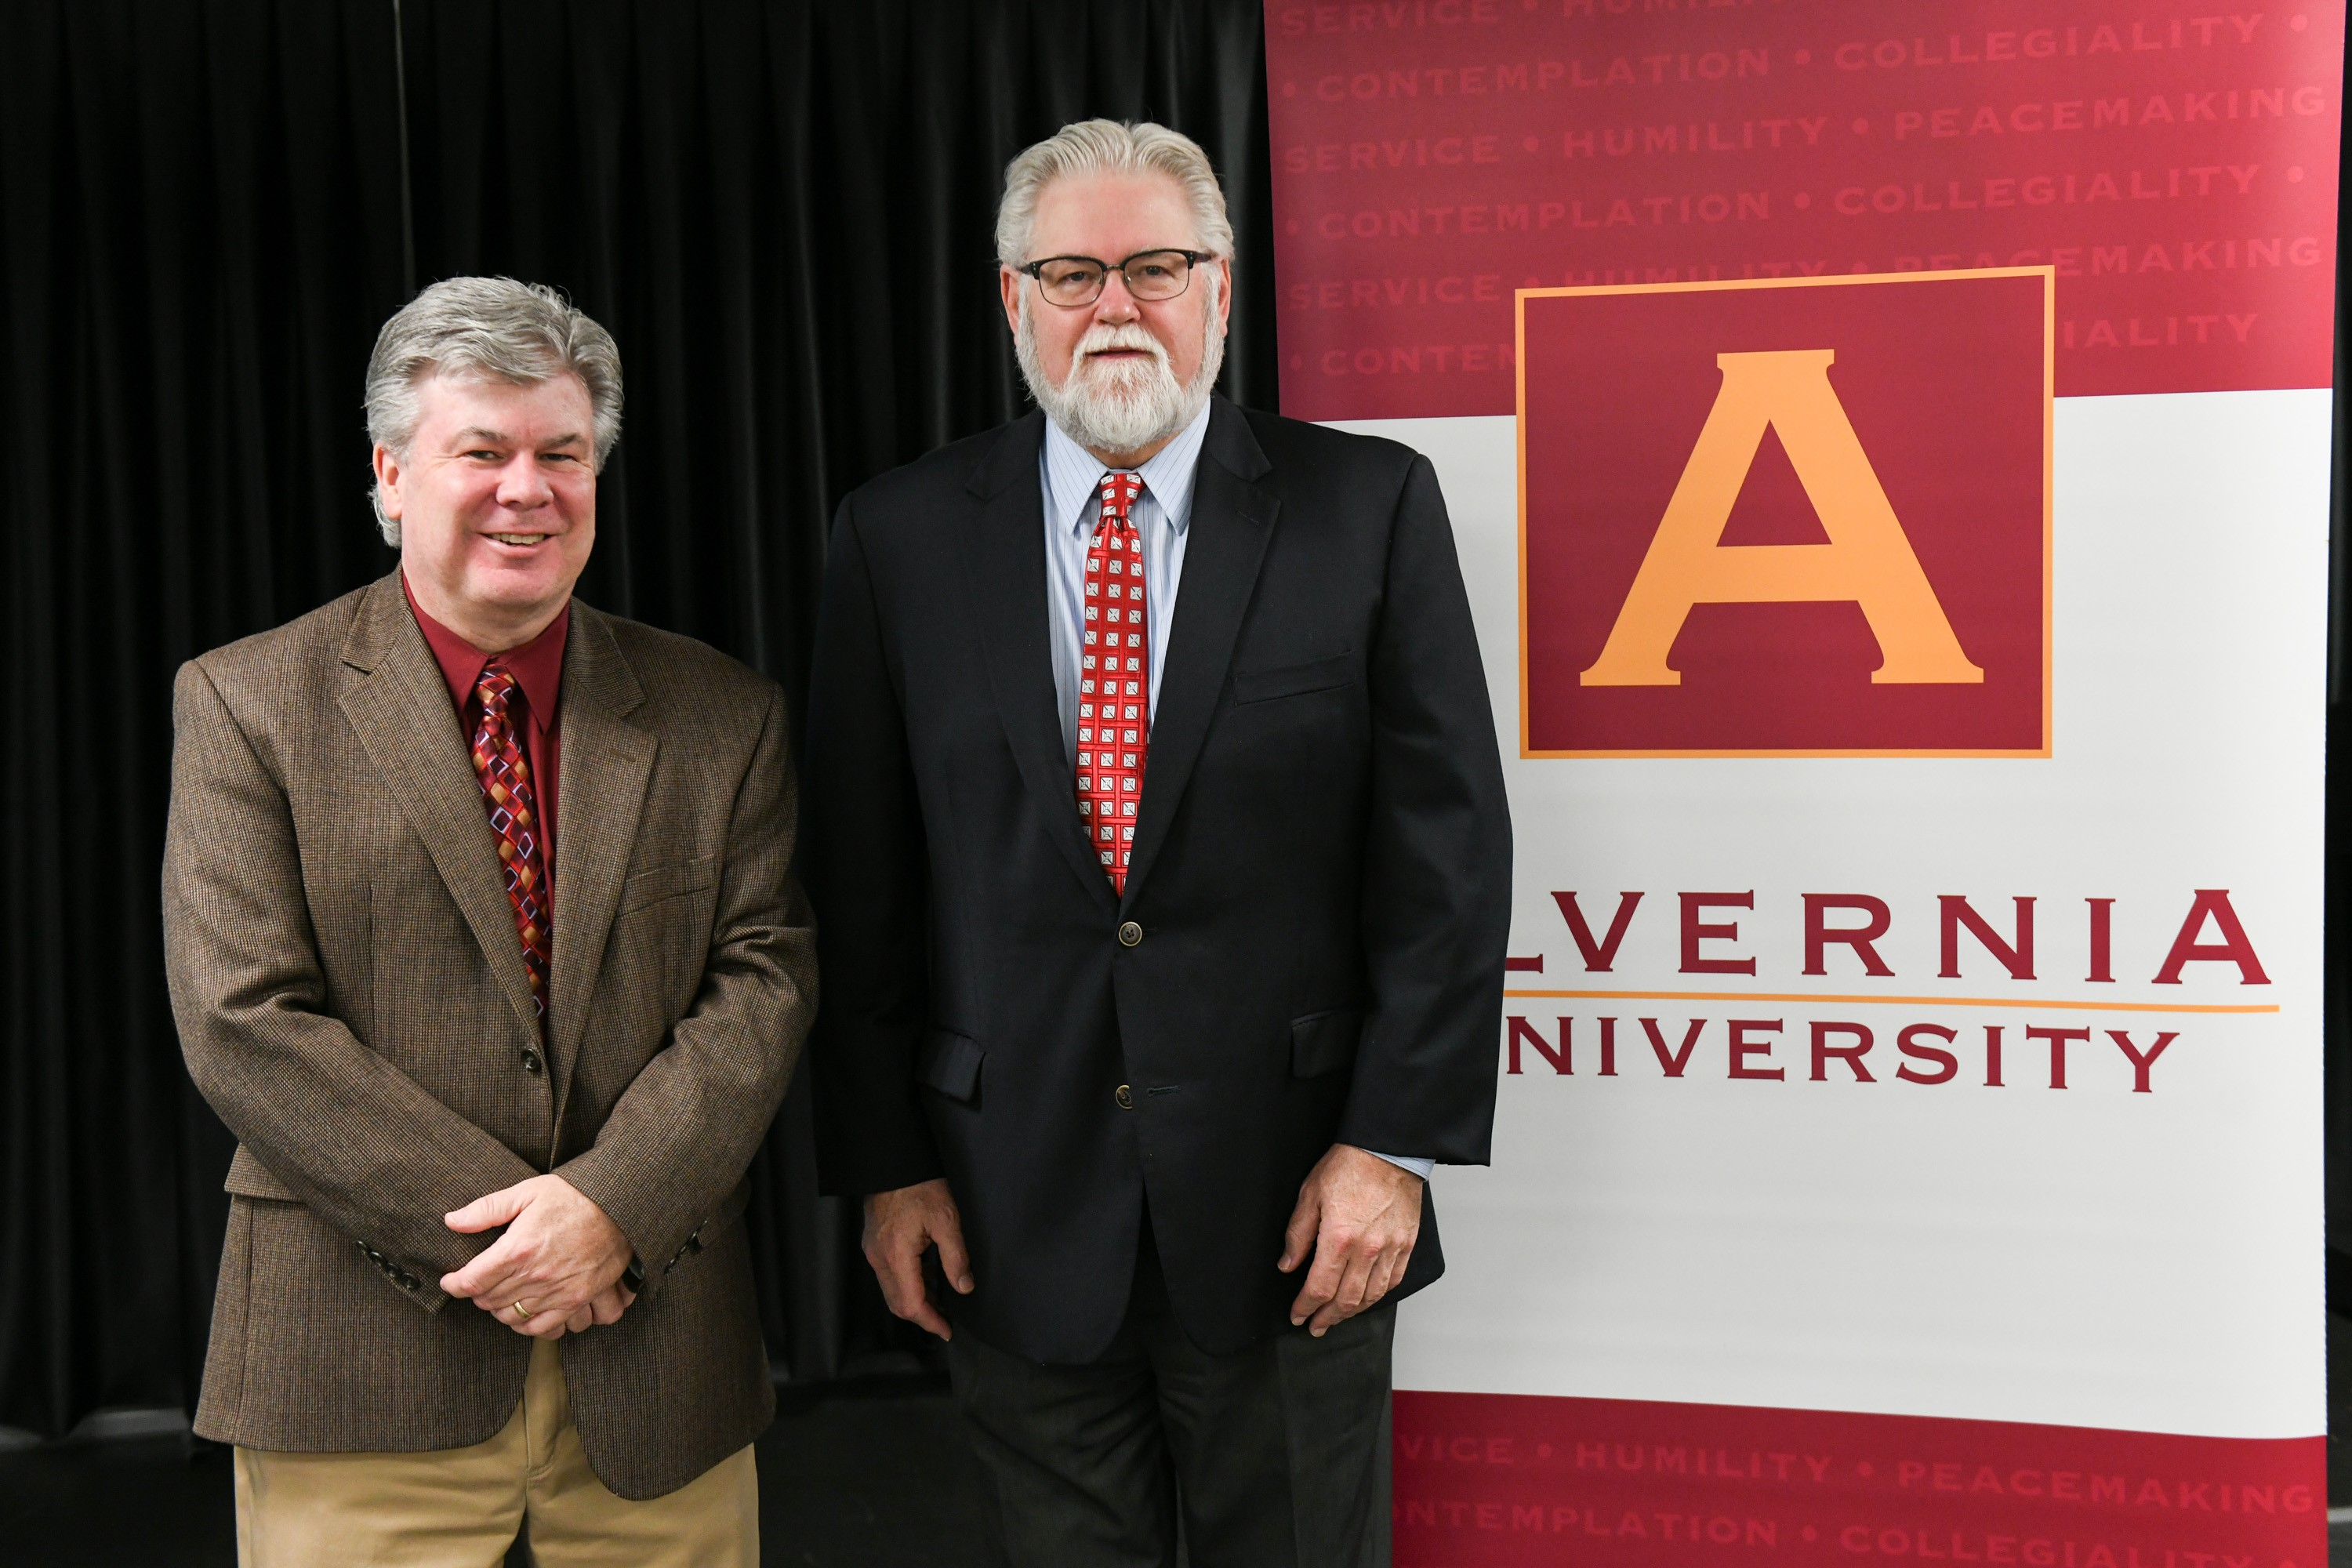 Montgomery County Community College partners with Alvernia University in Pottstown